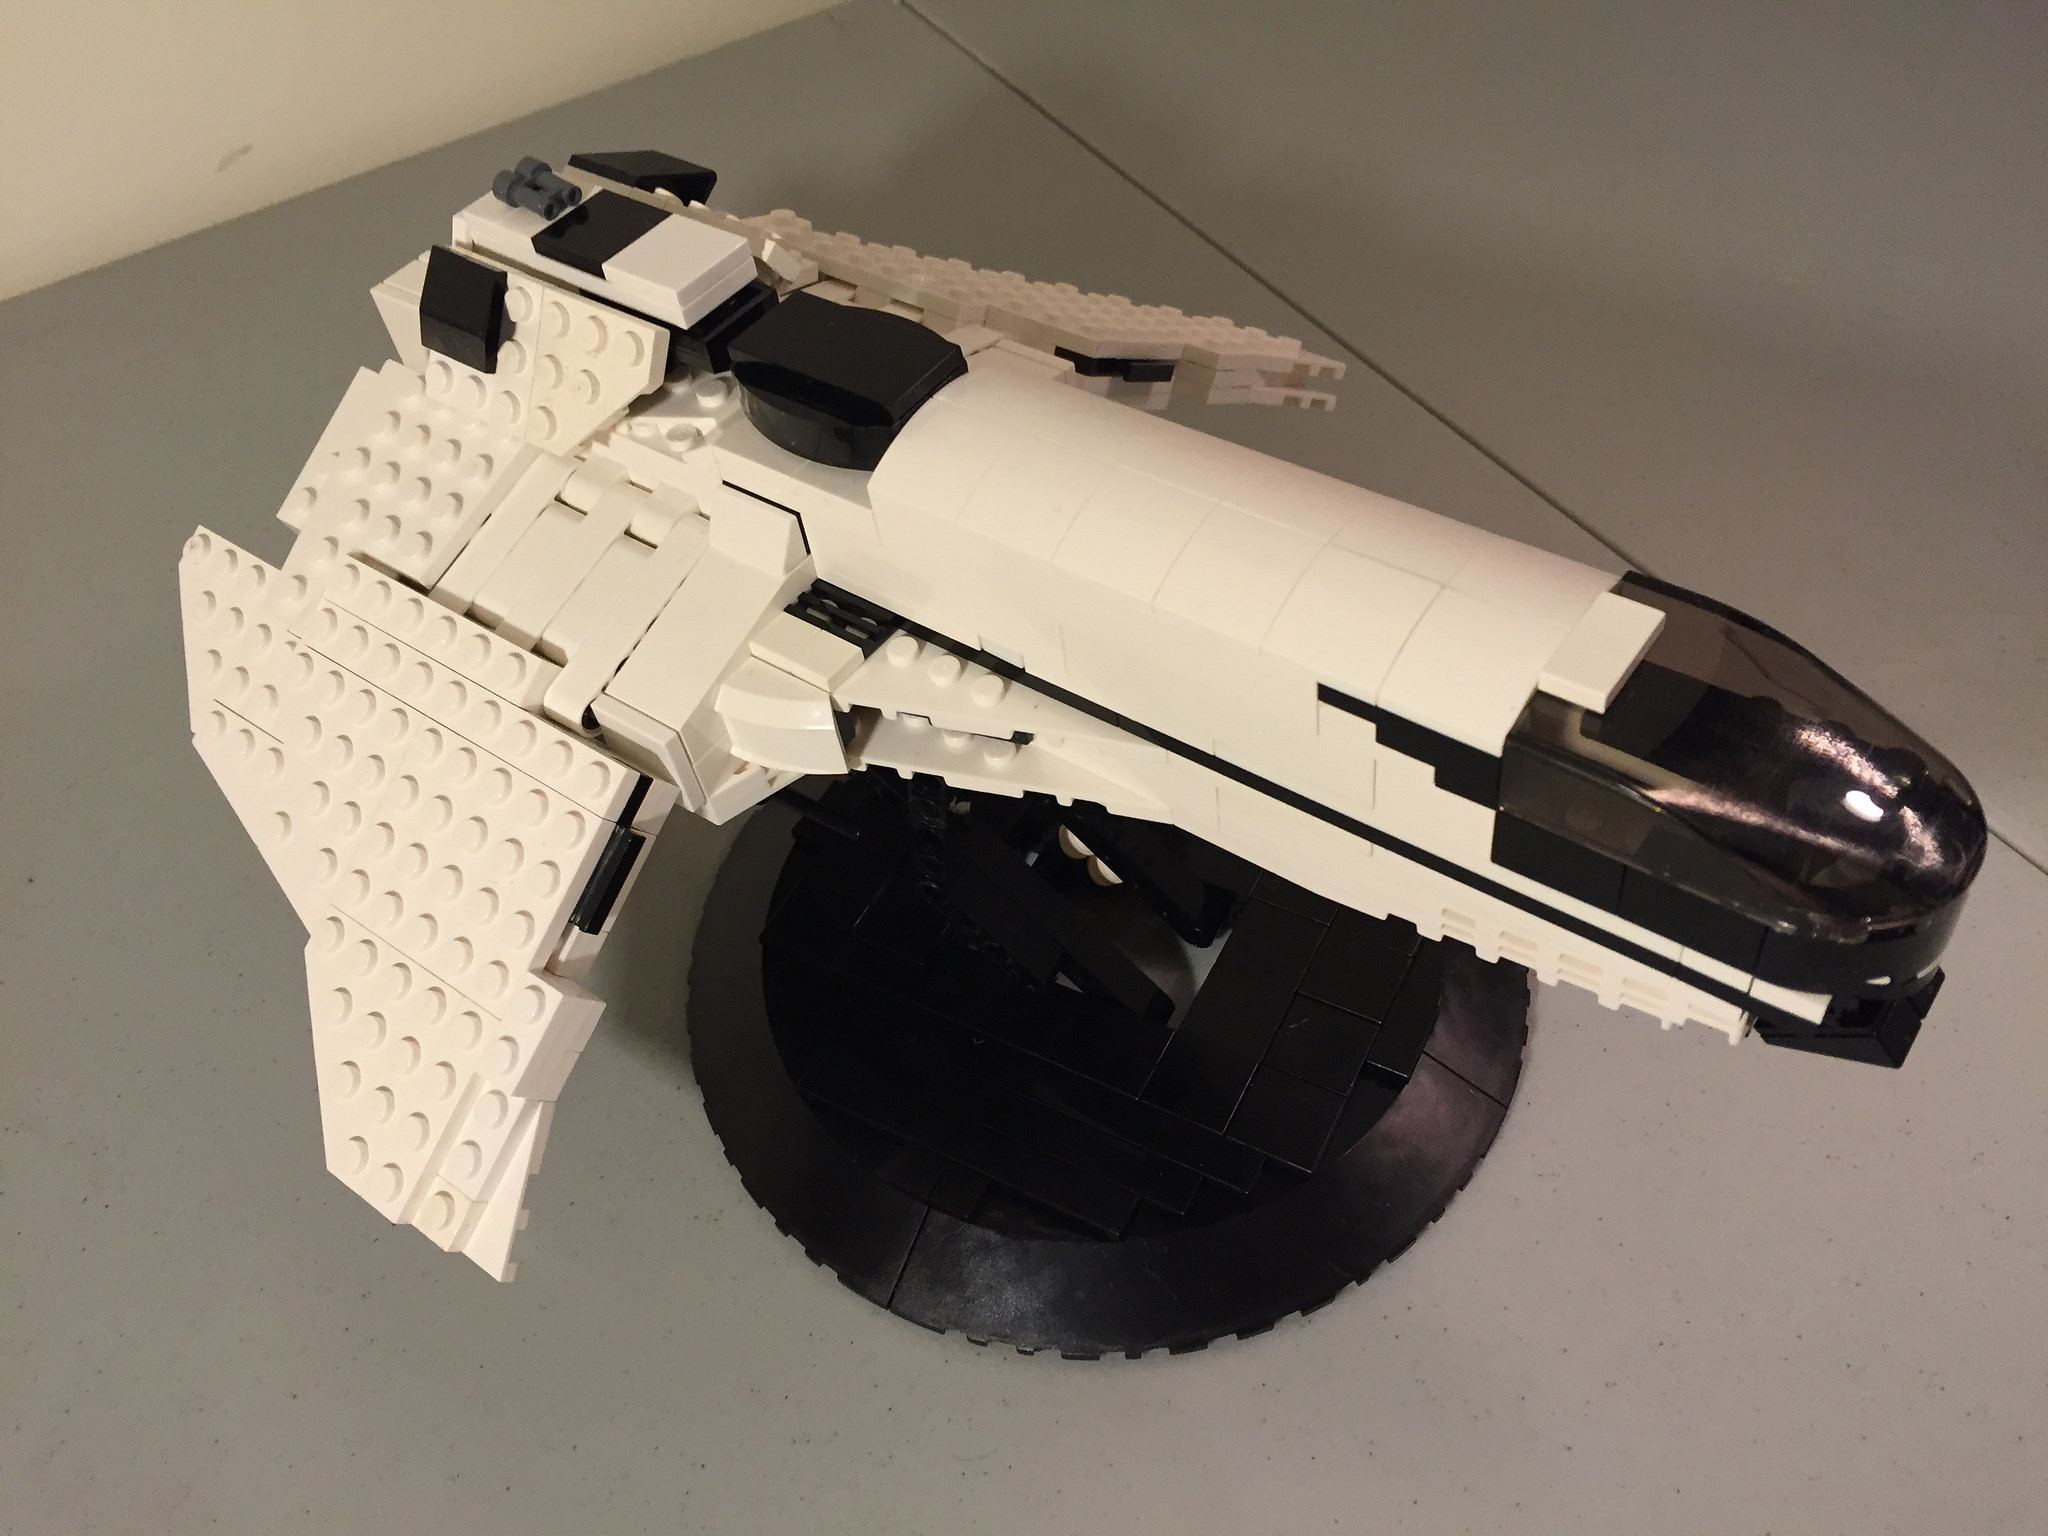 While it's far from the first item from the Destiny universe to find itself  in Lego, it's certainly one of the most intricate.